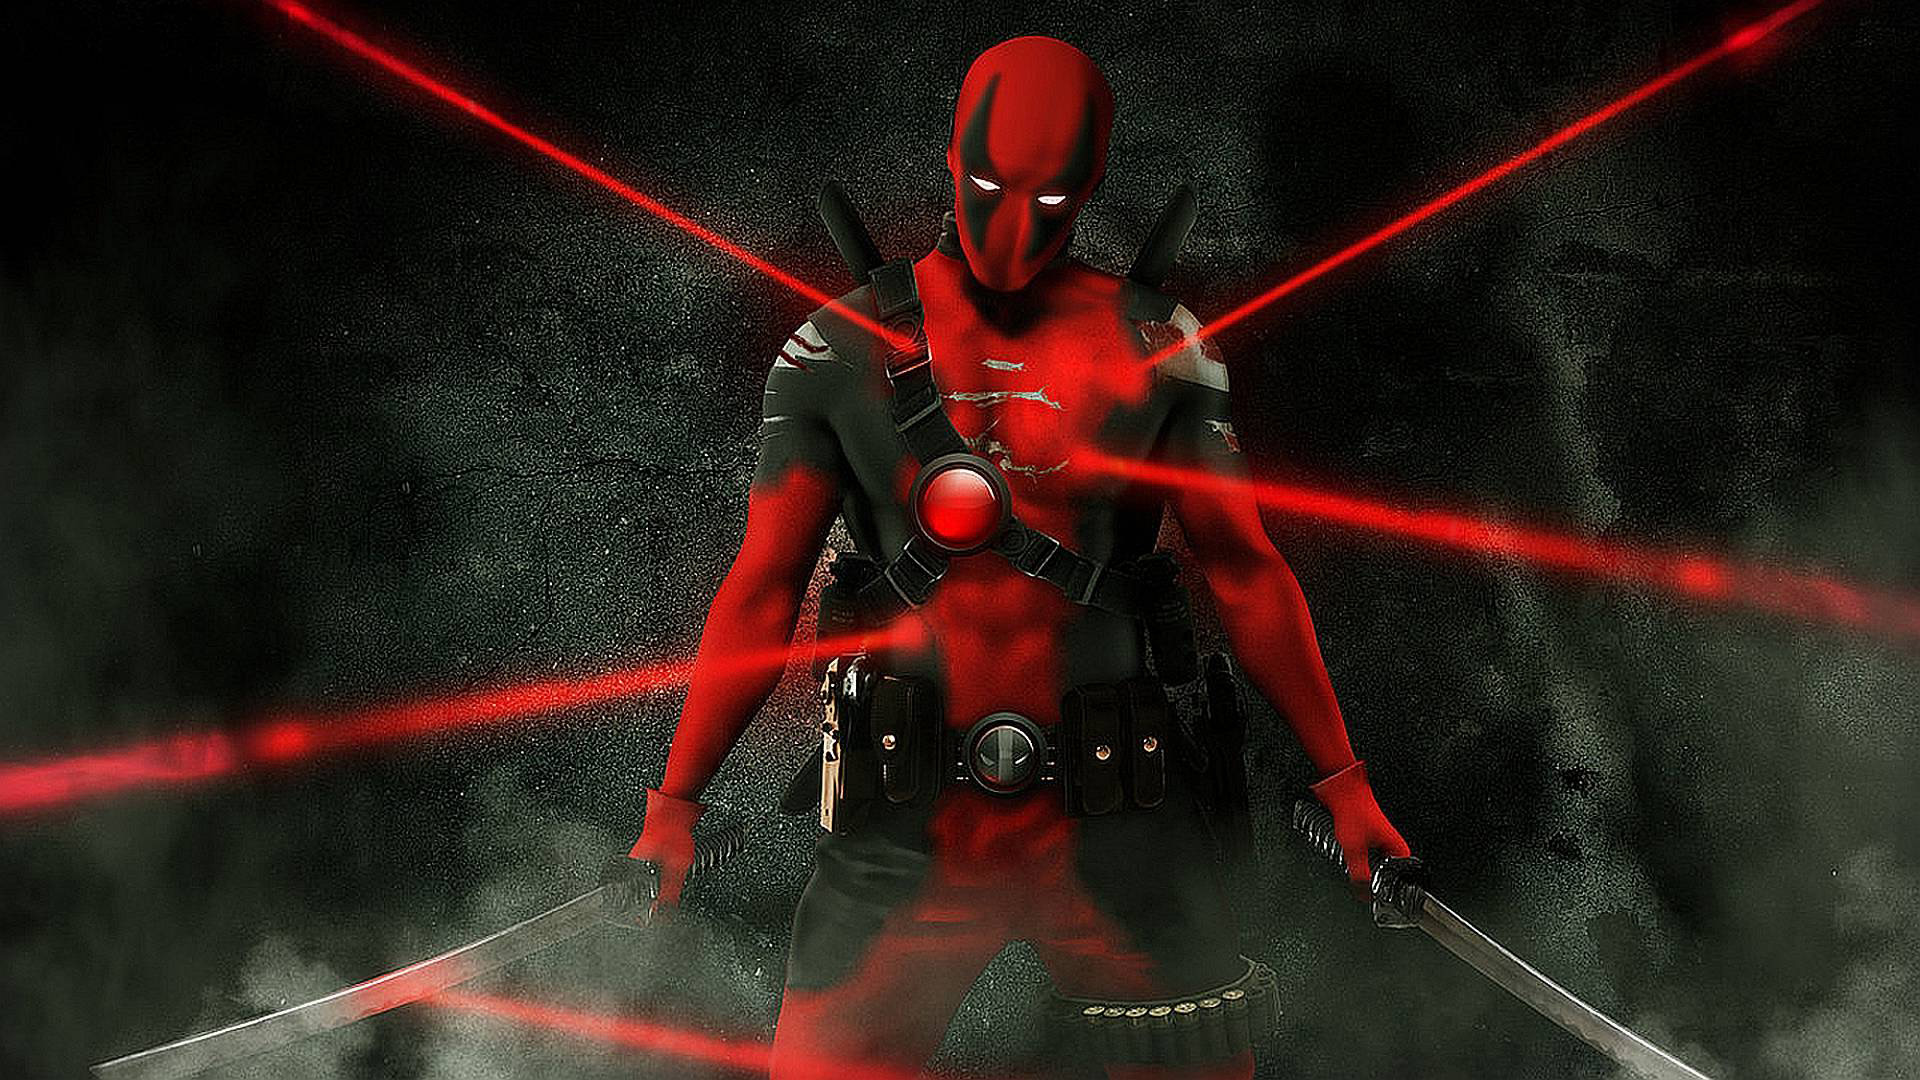 November 9 2015 By Stephen Comments Off on Deadpool Movie Wallpaper 1920x1080